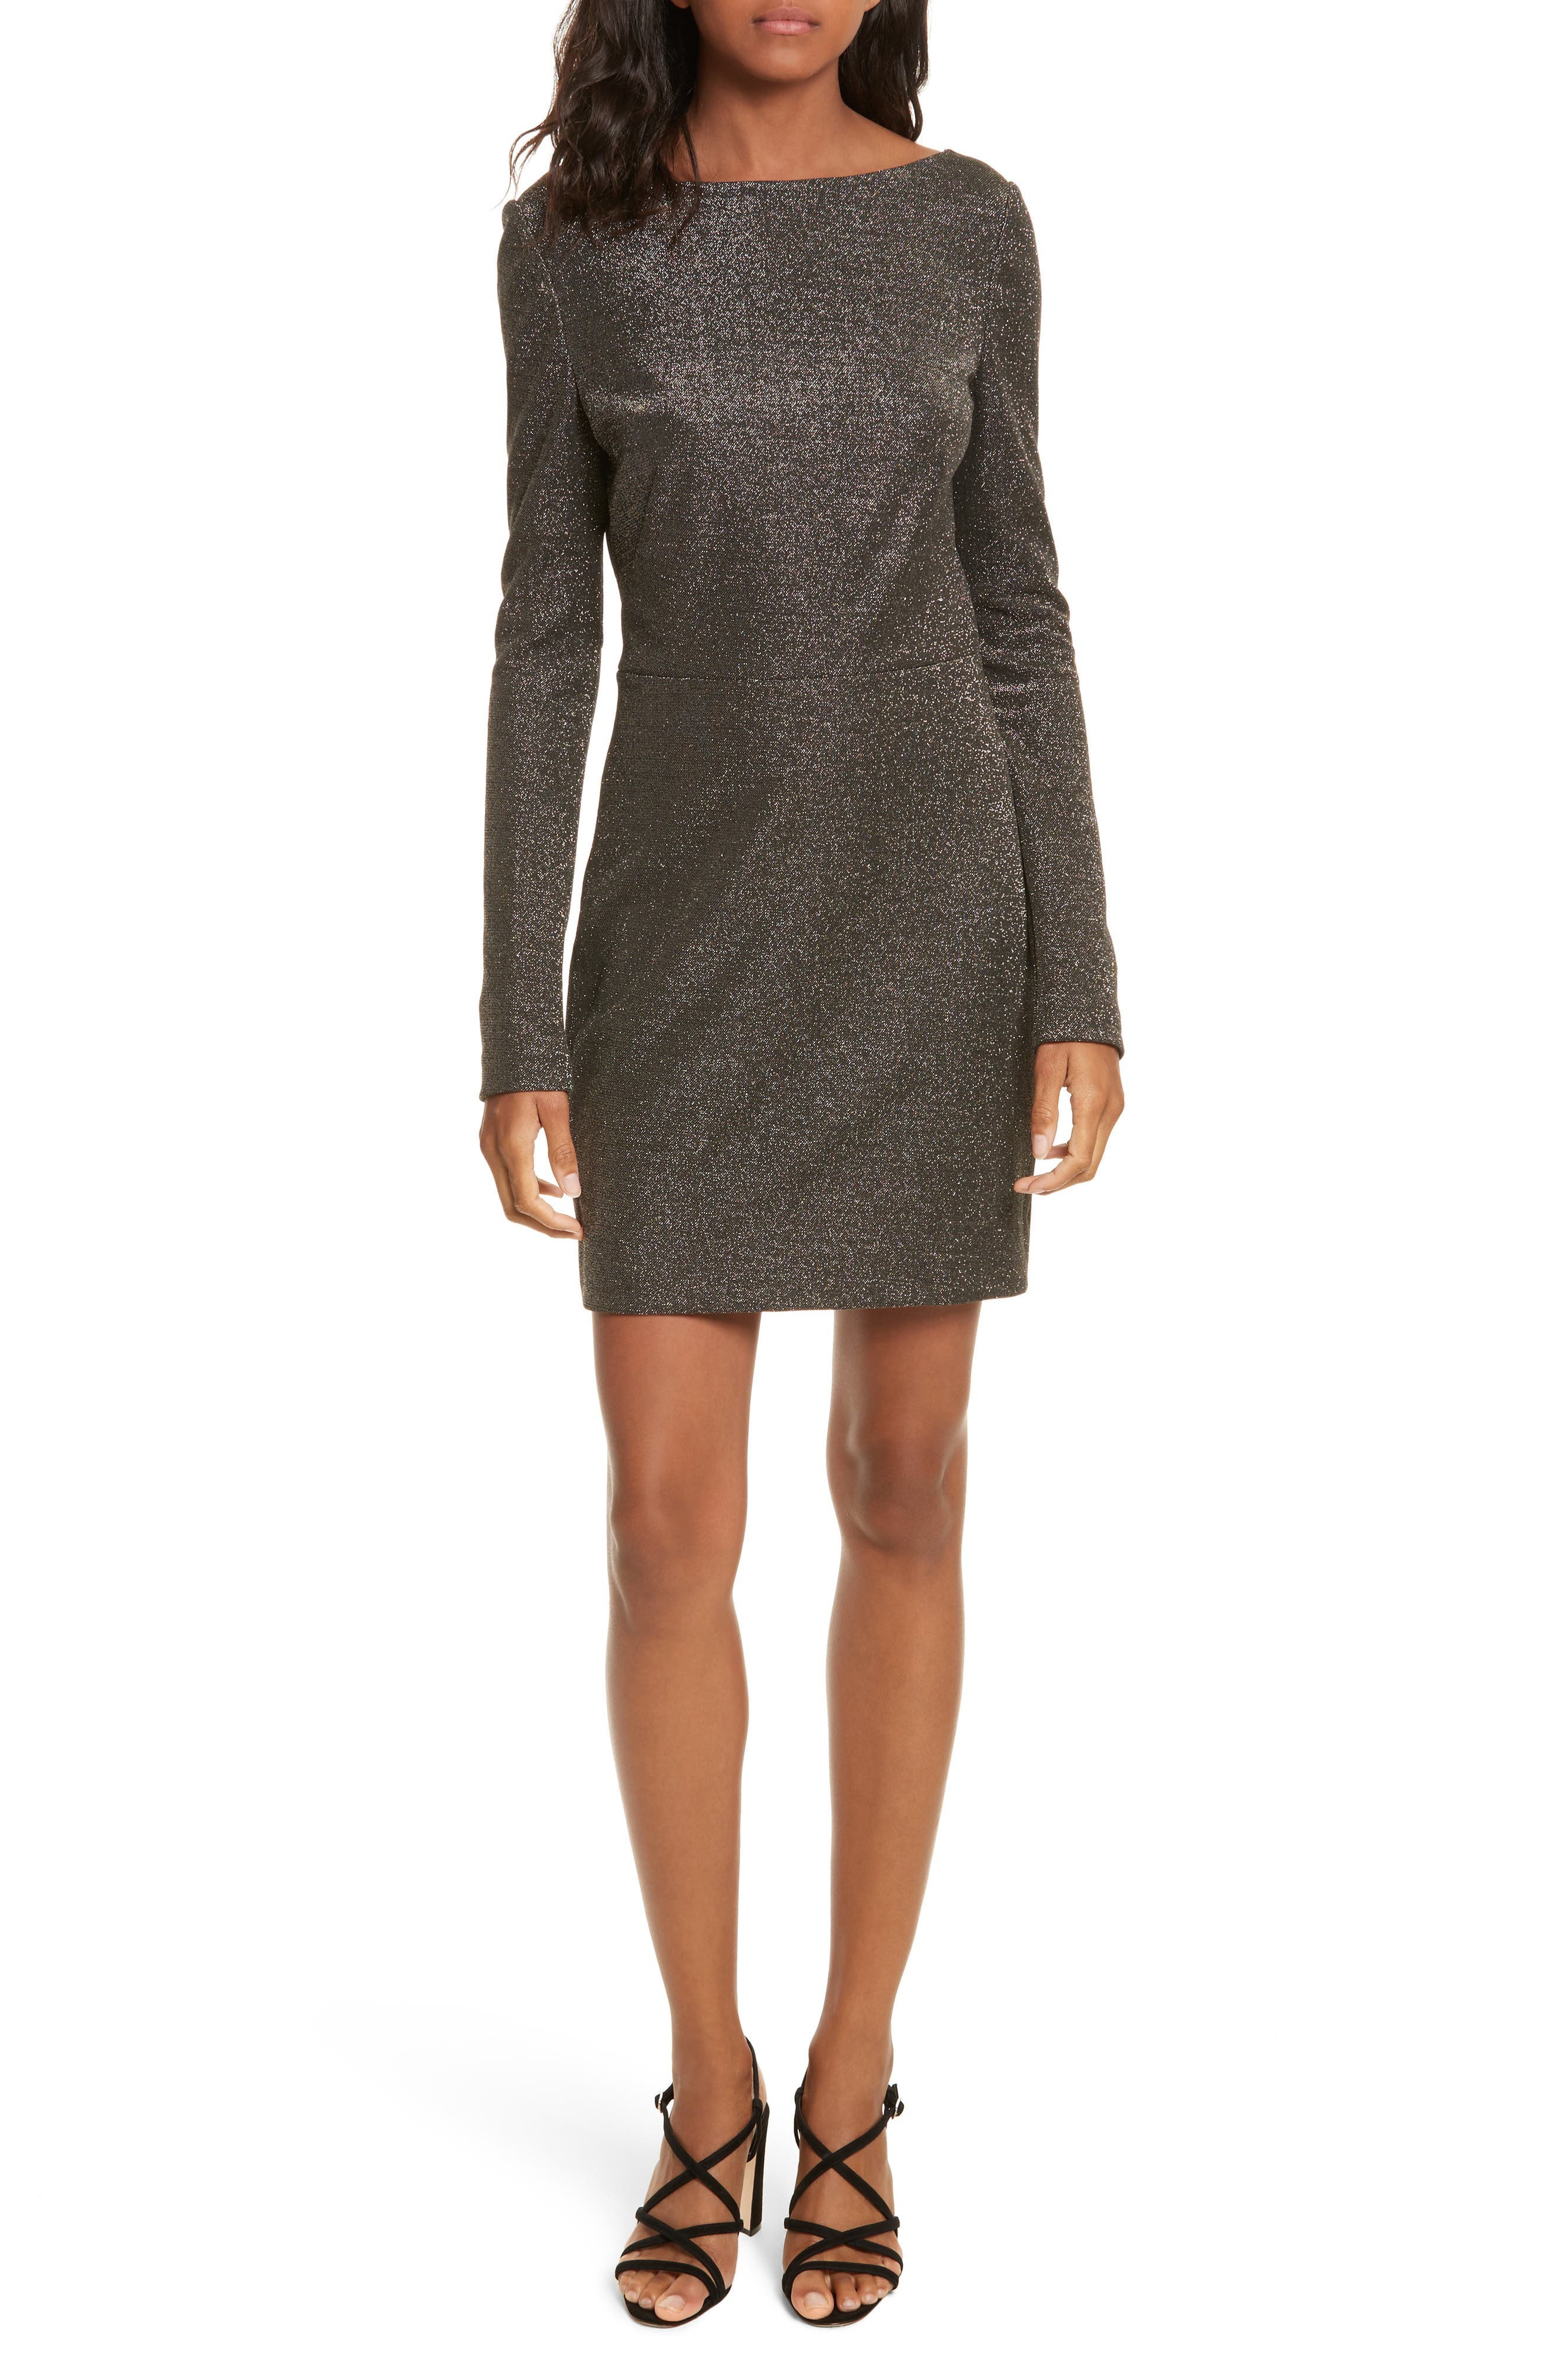 Diane von Furstenberg Sparkle Sheath Minidress,                         Main,                         color, Black